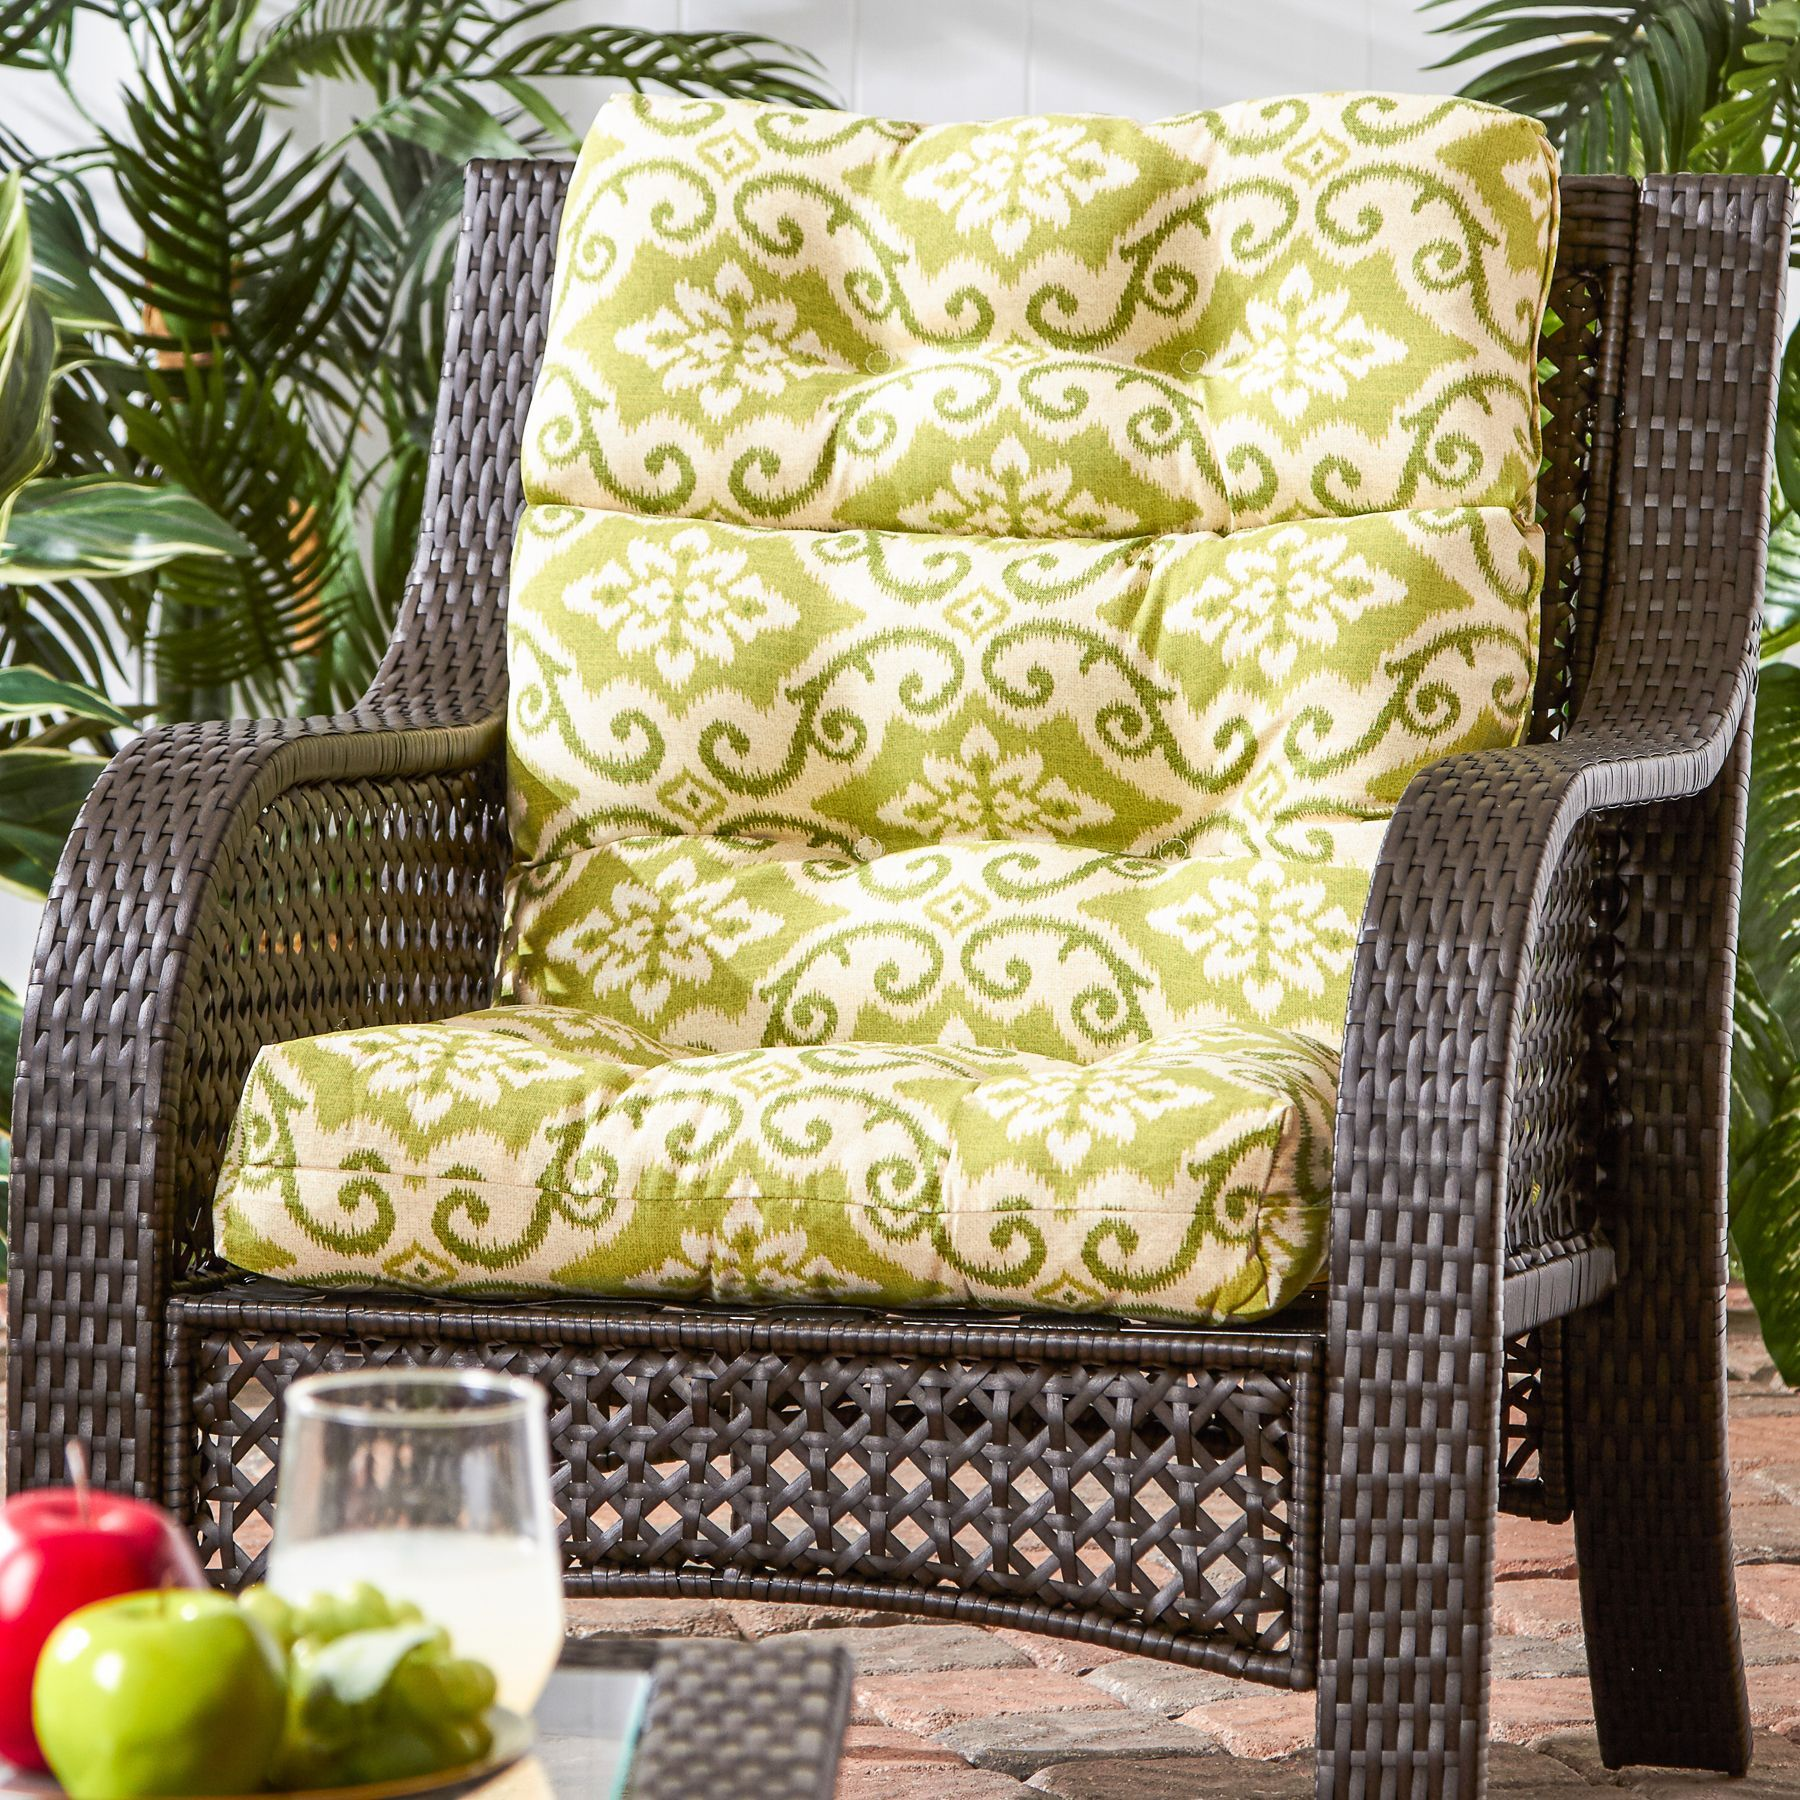 Havenside Home Cocoa Beach 22 Inch X 44 Inch Outdoor High Back